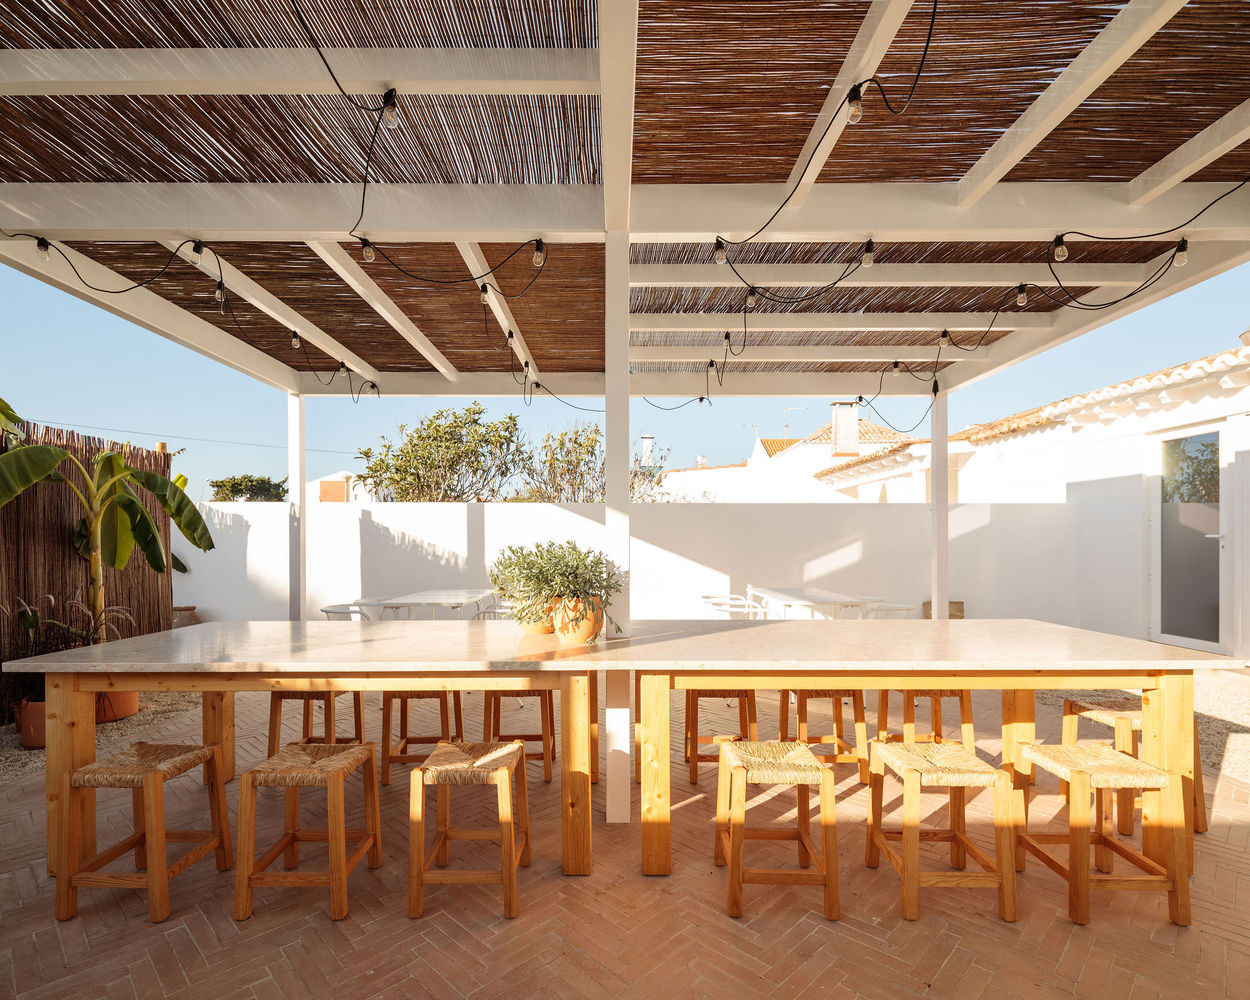 Whitewashed bamboo and exposed timber bring a homey vibe to this airy restaurant, located at the heart of a fishing village on Portugal's western Alentejo coast.